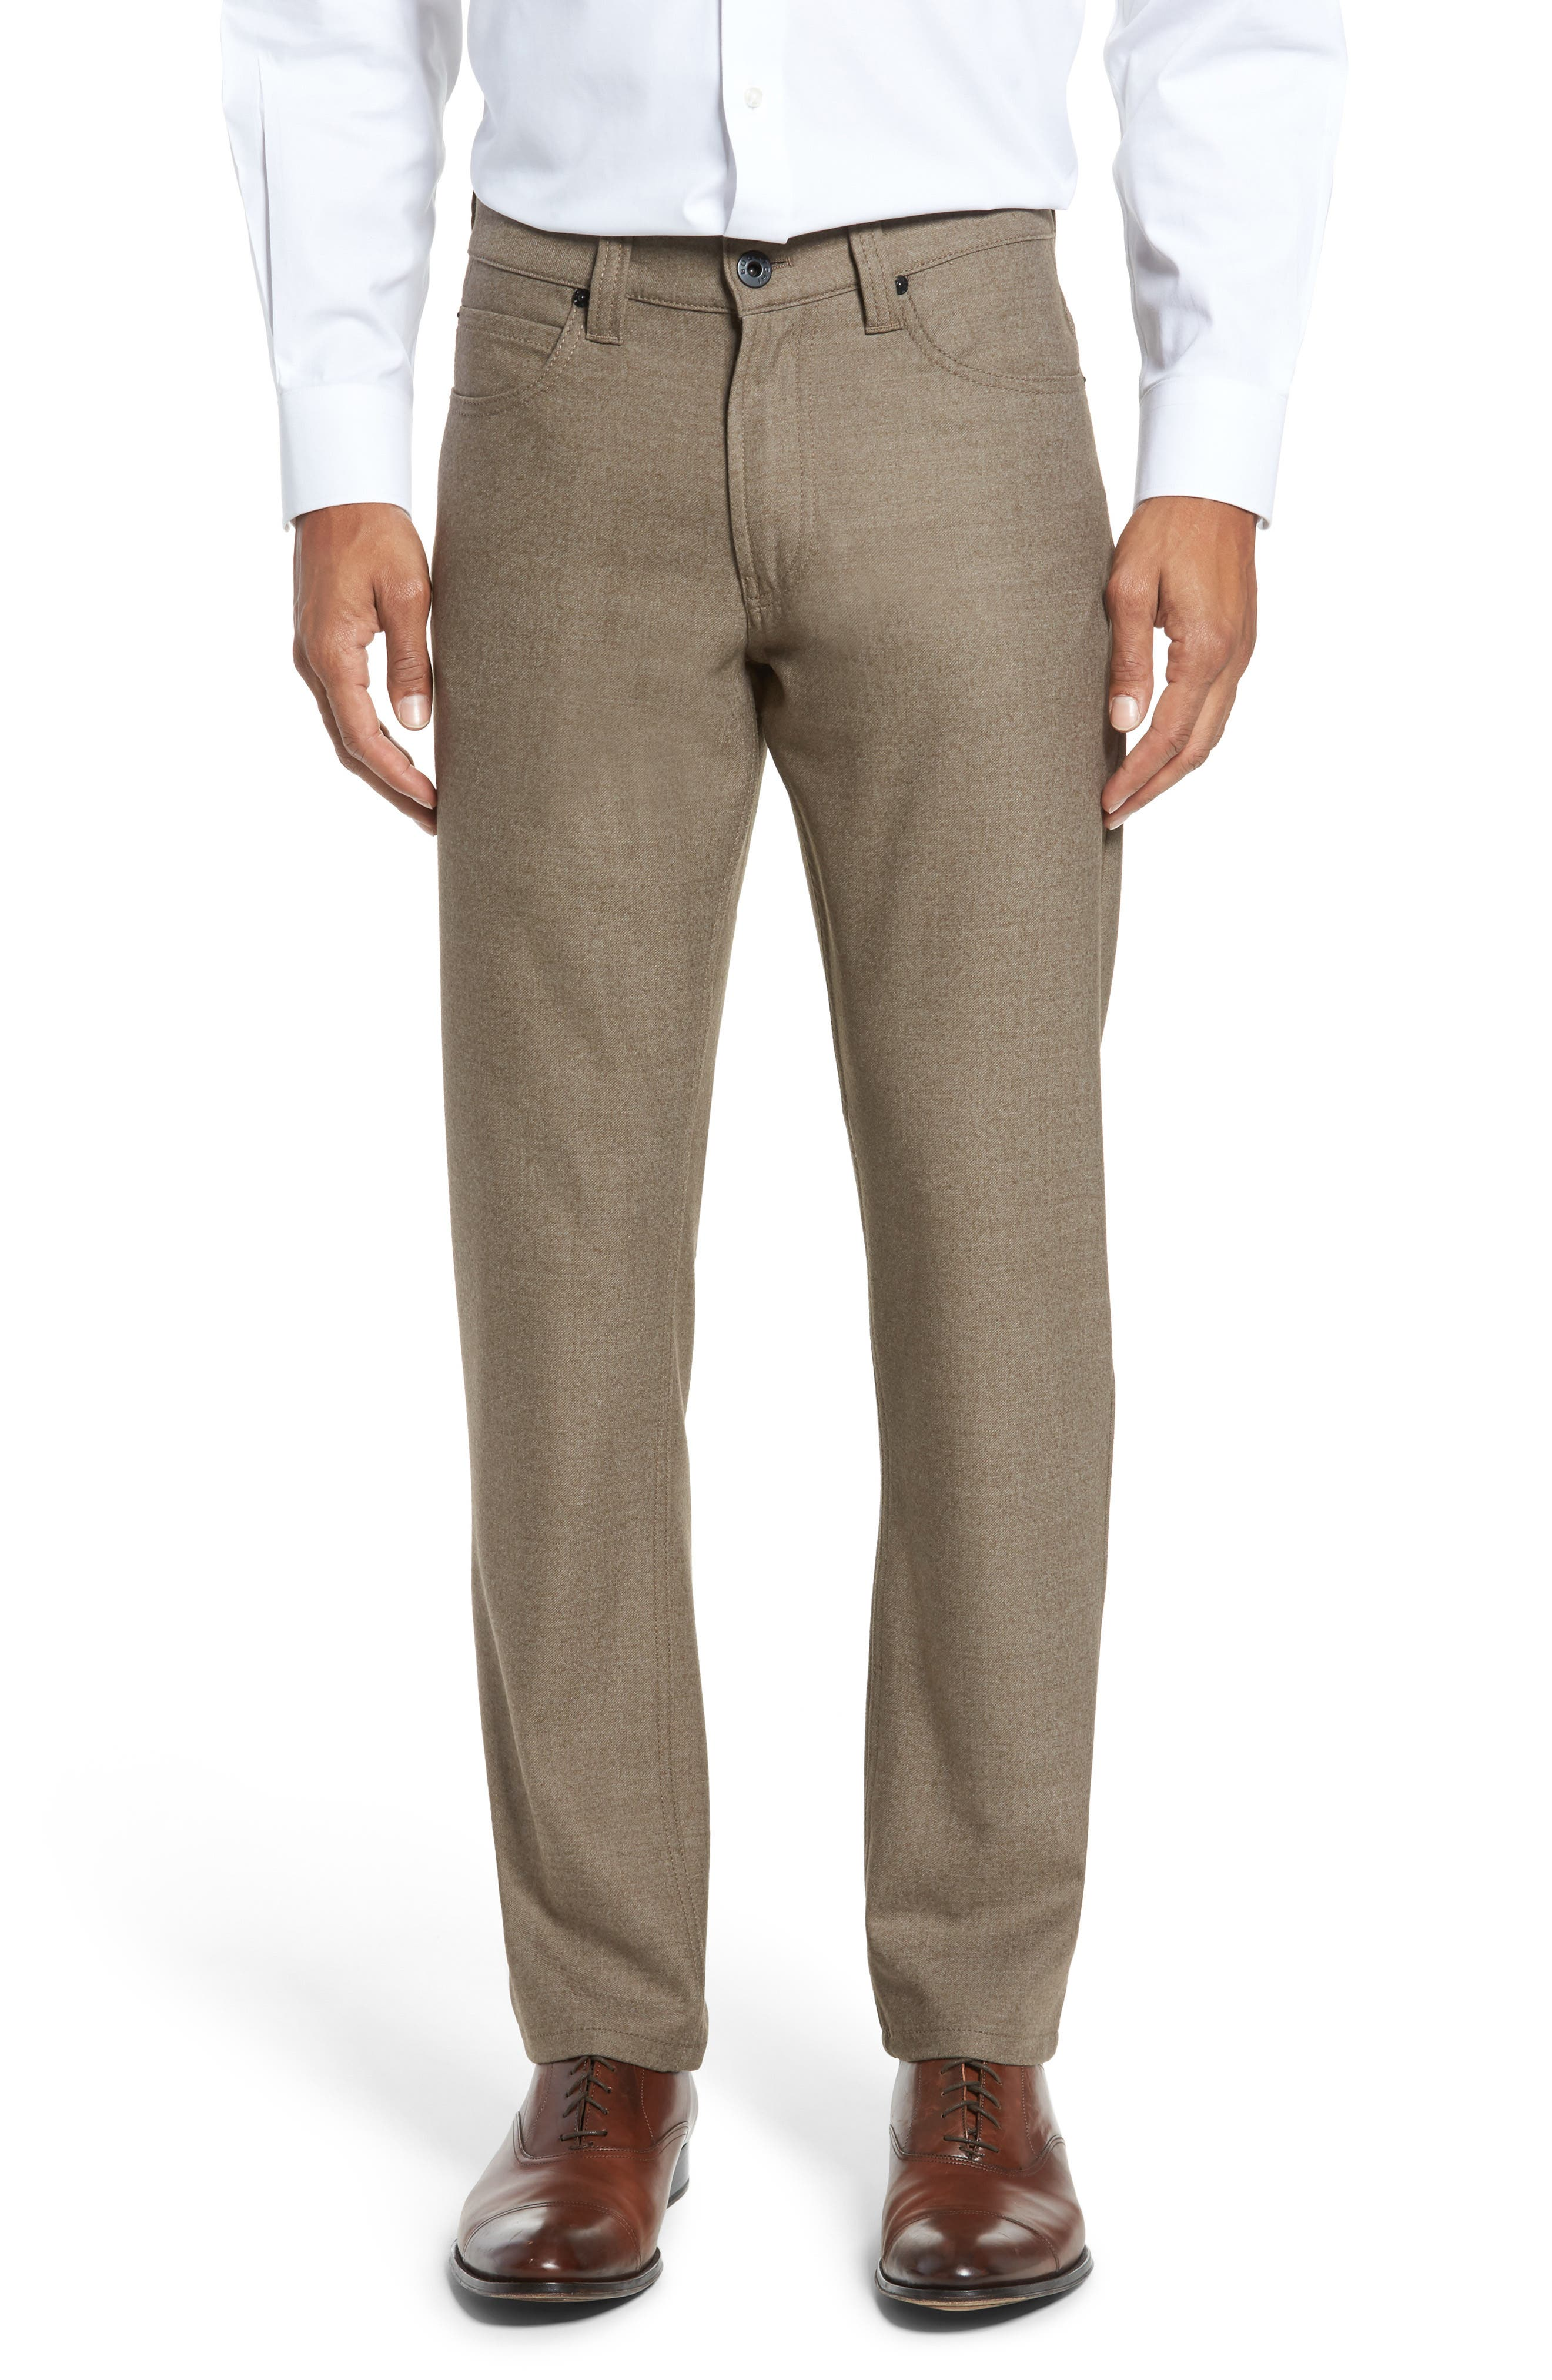 Wool Blend Pants,                             Main thumbnail 1, color,                             208